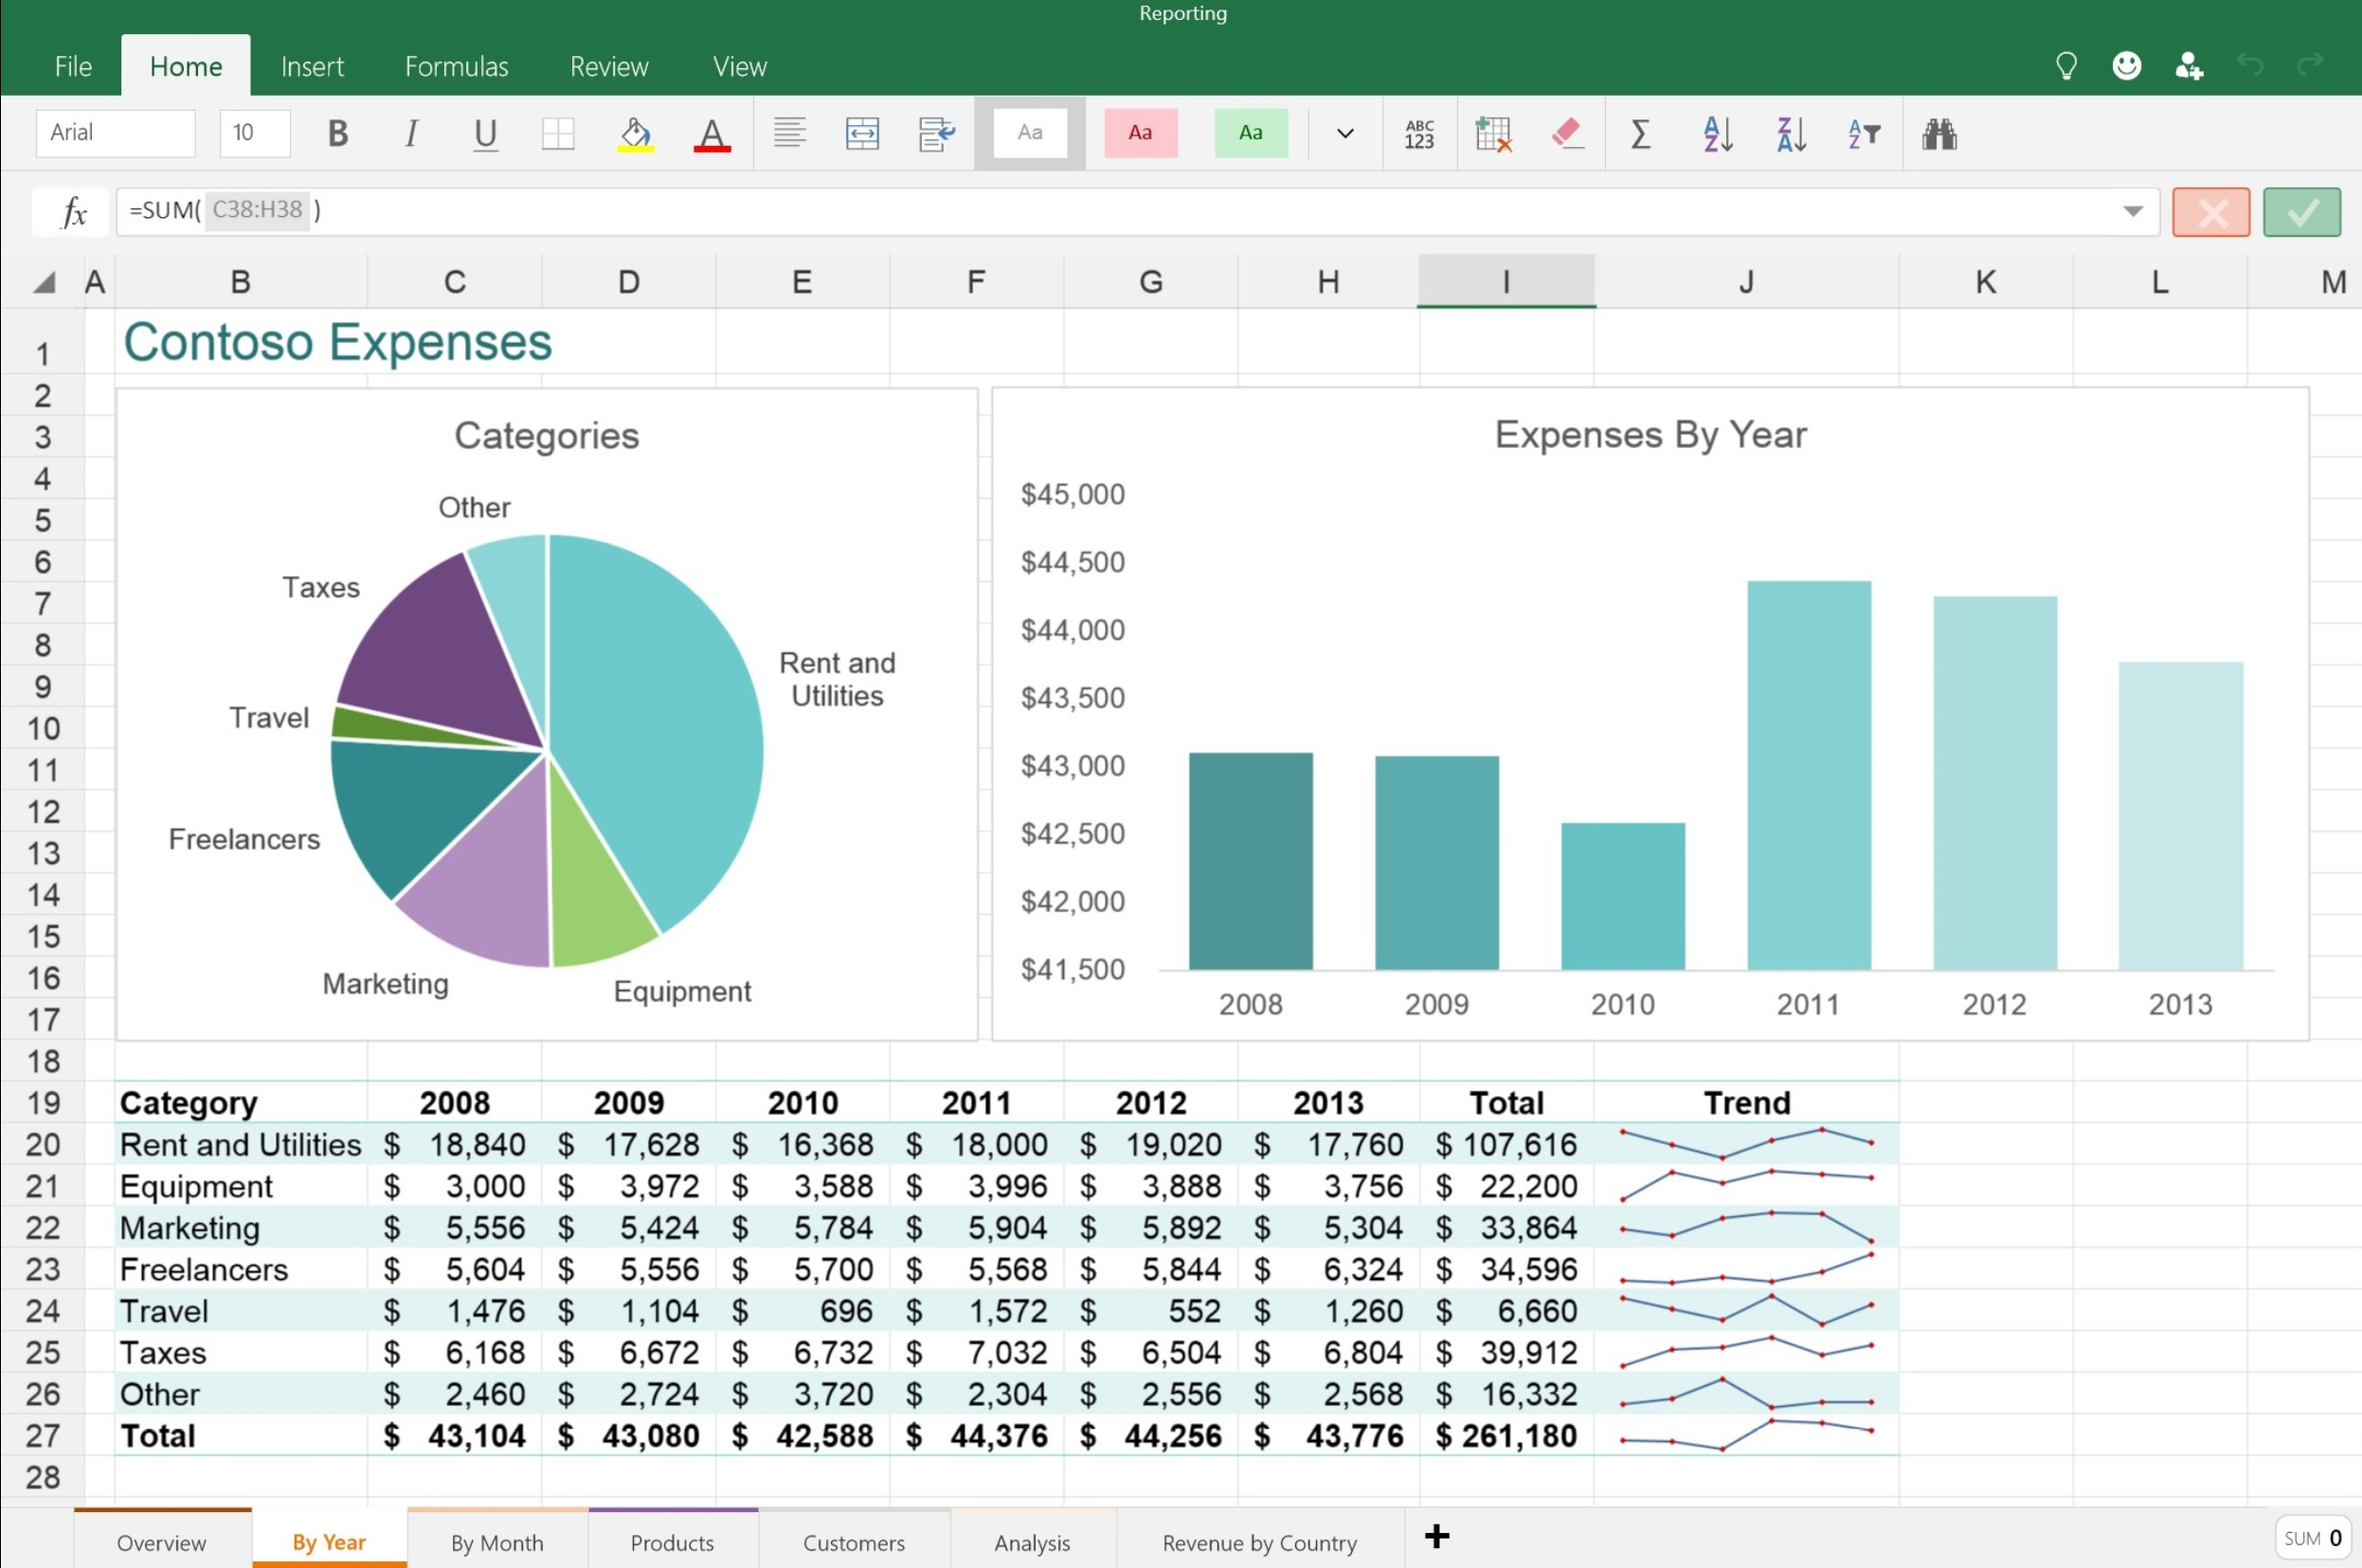 Ediblewildsus  Winsome Features Available In The New Word Excel And Powerpoint Apps For  With Gorgeous Excel Touch App  With Comely Split Formula In Excel Also How To Connect Sql To Excel In Addition Roi Excel Template And Vlookup Exercises Excel  As Well As Printing Gridlines In Excel Additionally How To Forecast Revenue In Excel From Mspowerusercom With Ediblewildsus  Gorgeous Features Available In The New Word Excel And Powerpoint Apps For  With Comely Excel Touch App  And Winsome Split Formula In Excel Also How To Connect Sql To Excel In Addition Roi Excel Template From Mspowerusercom